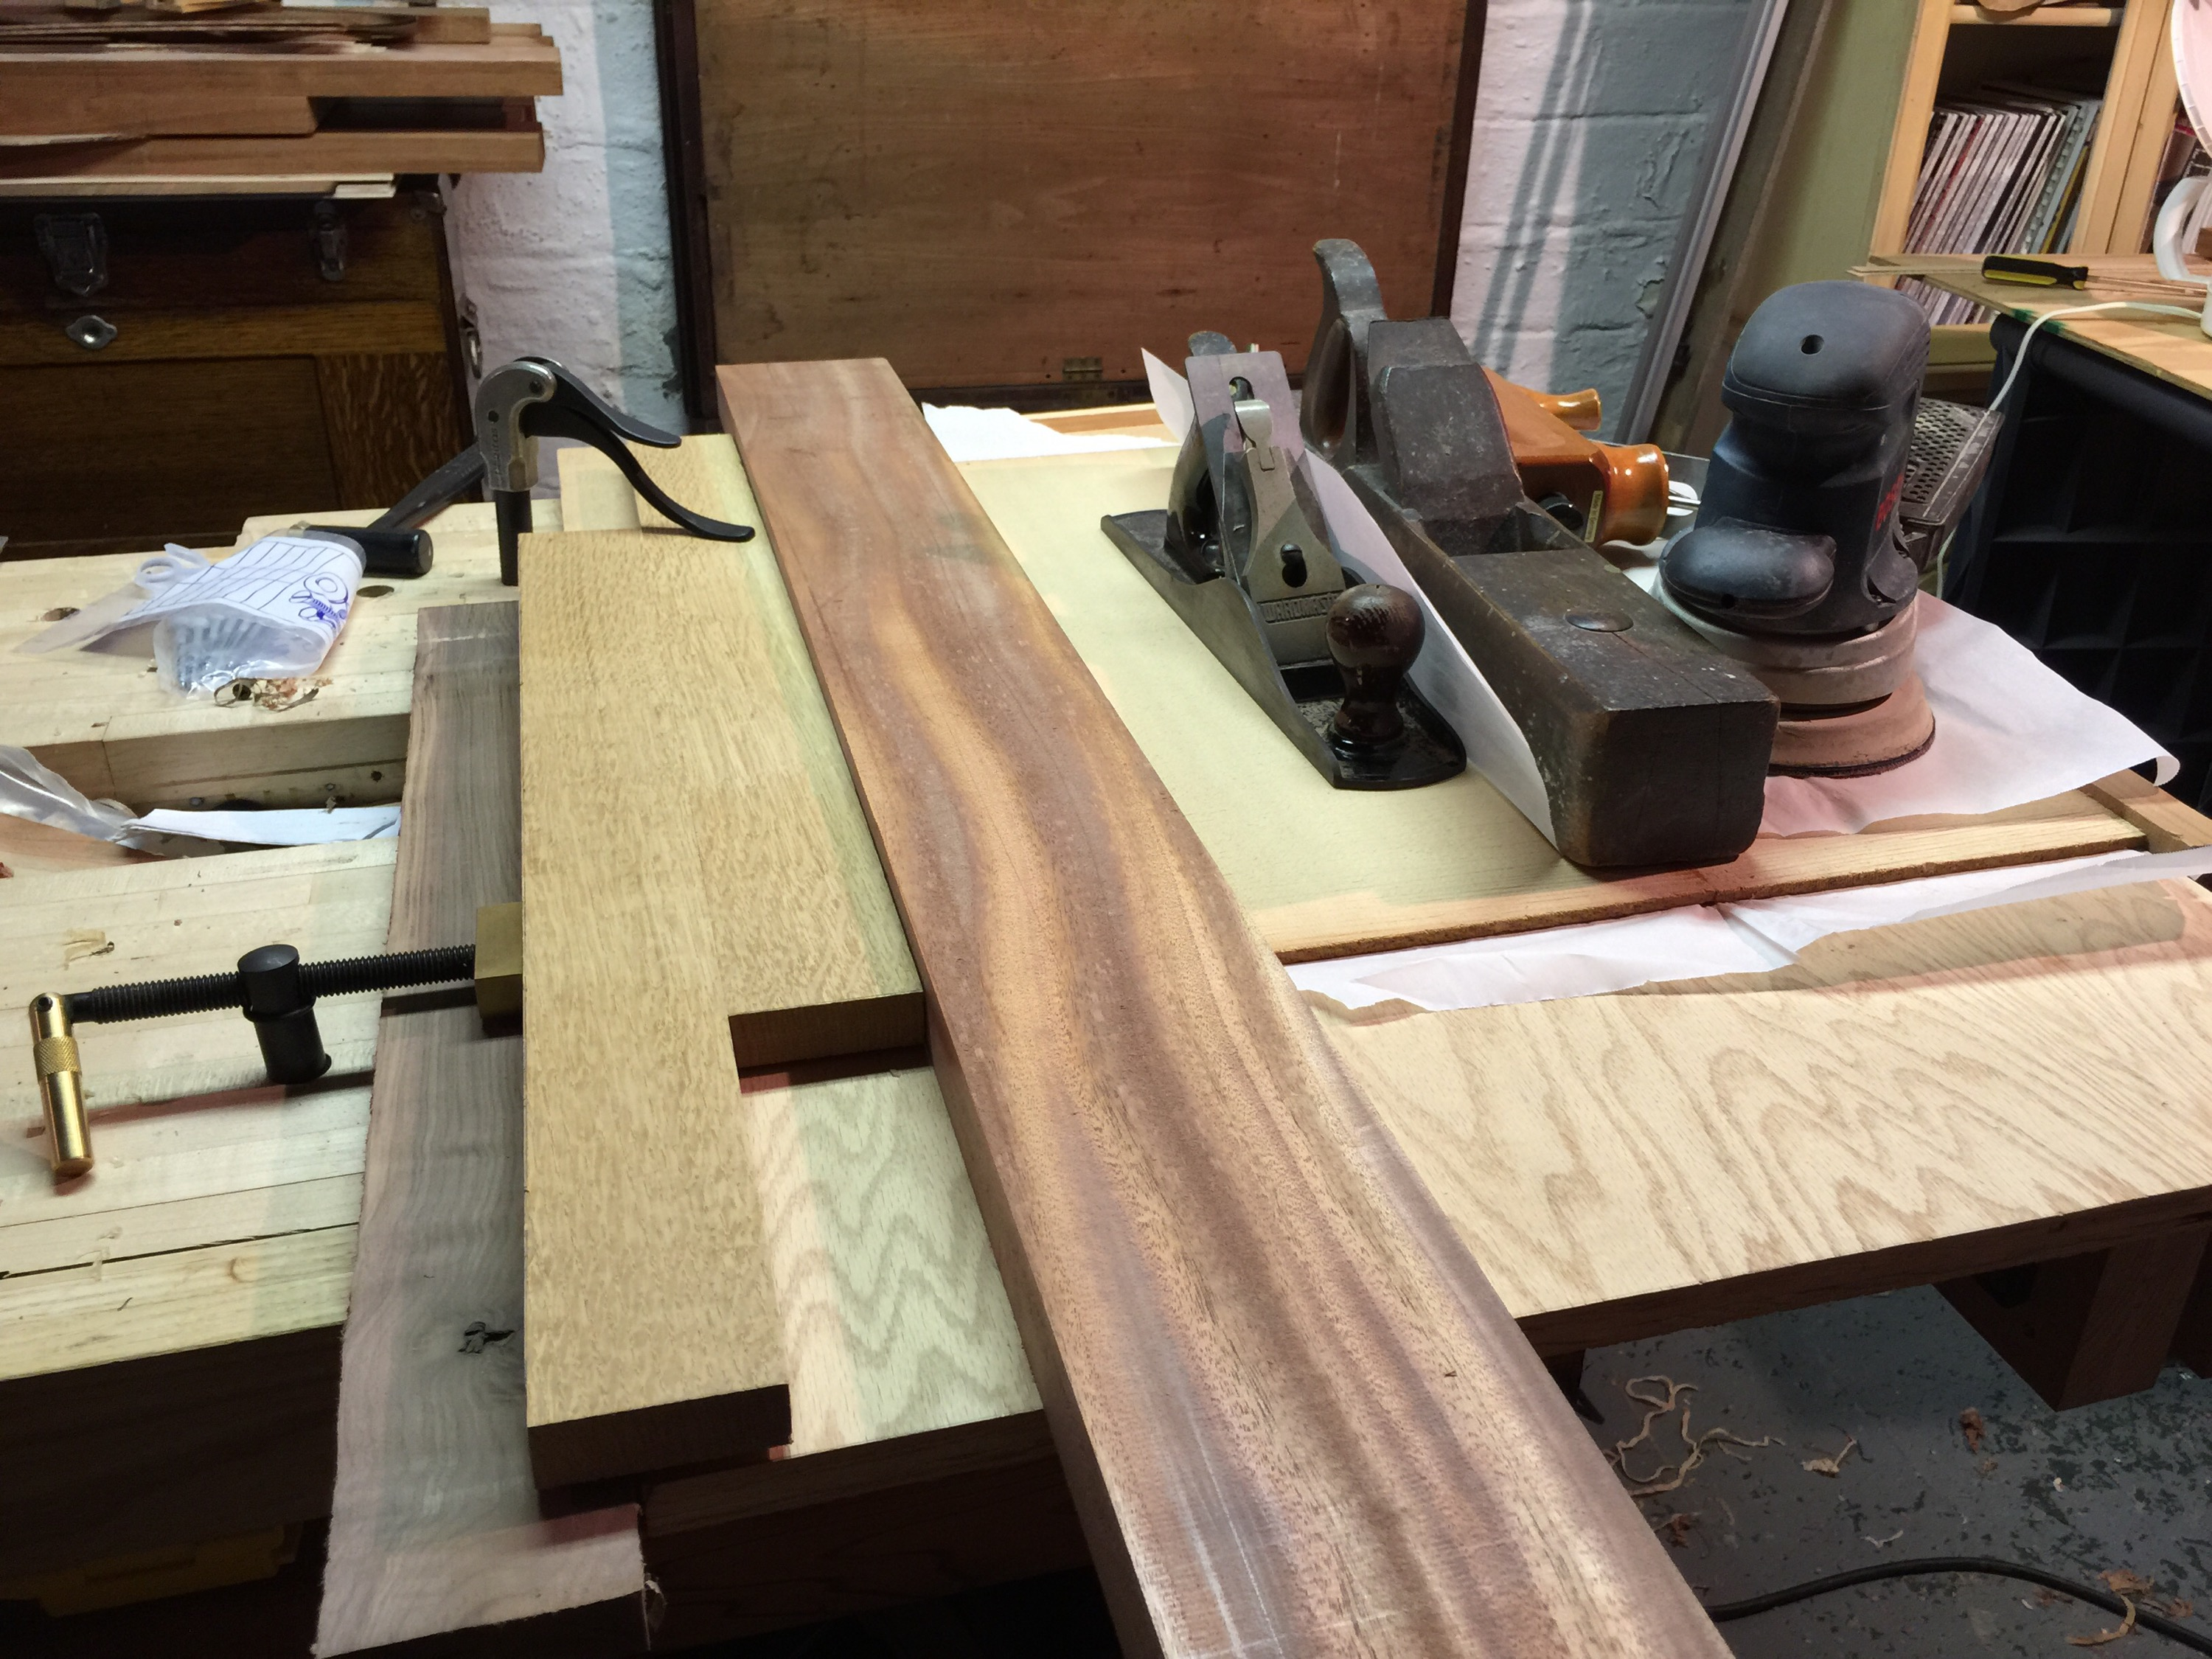 More smoothing tools as clamps...